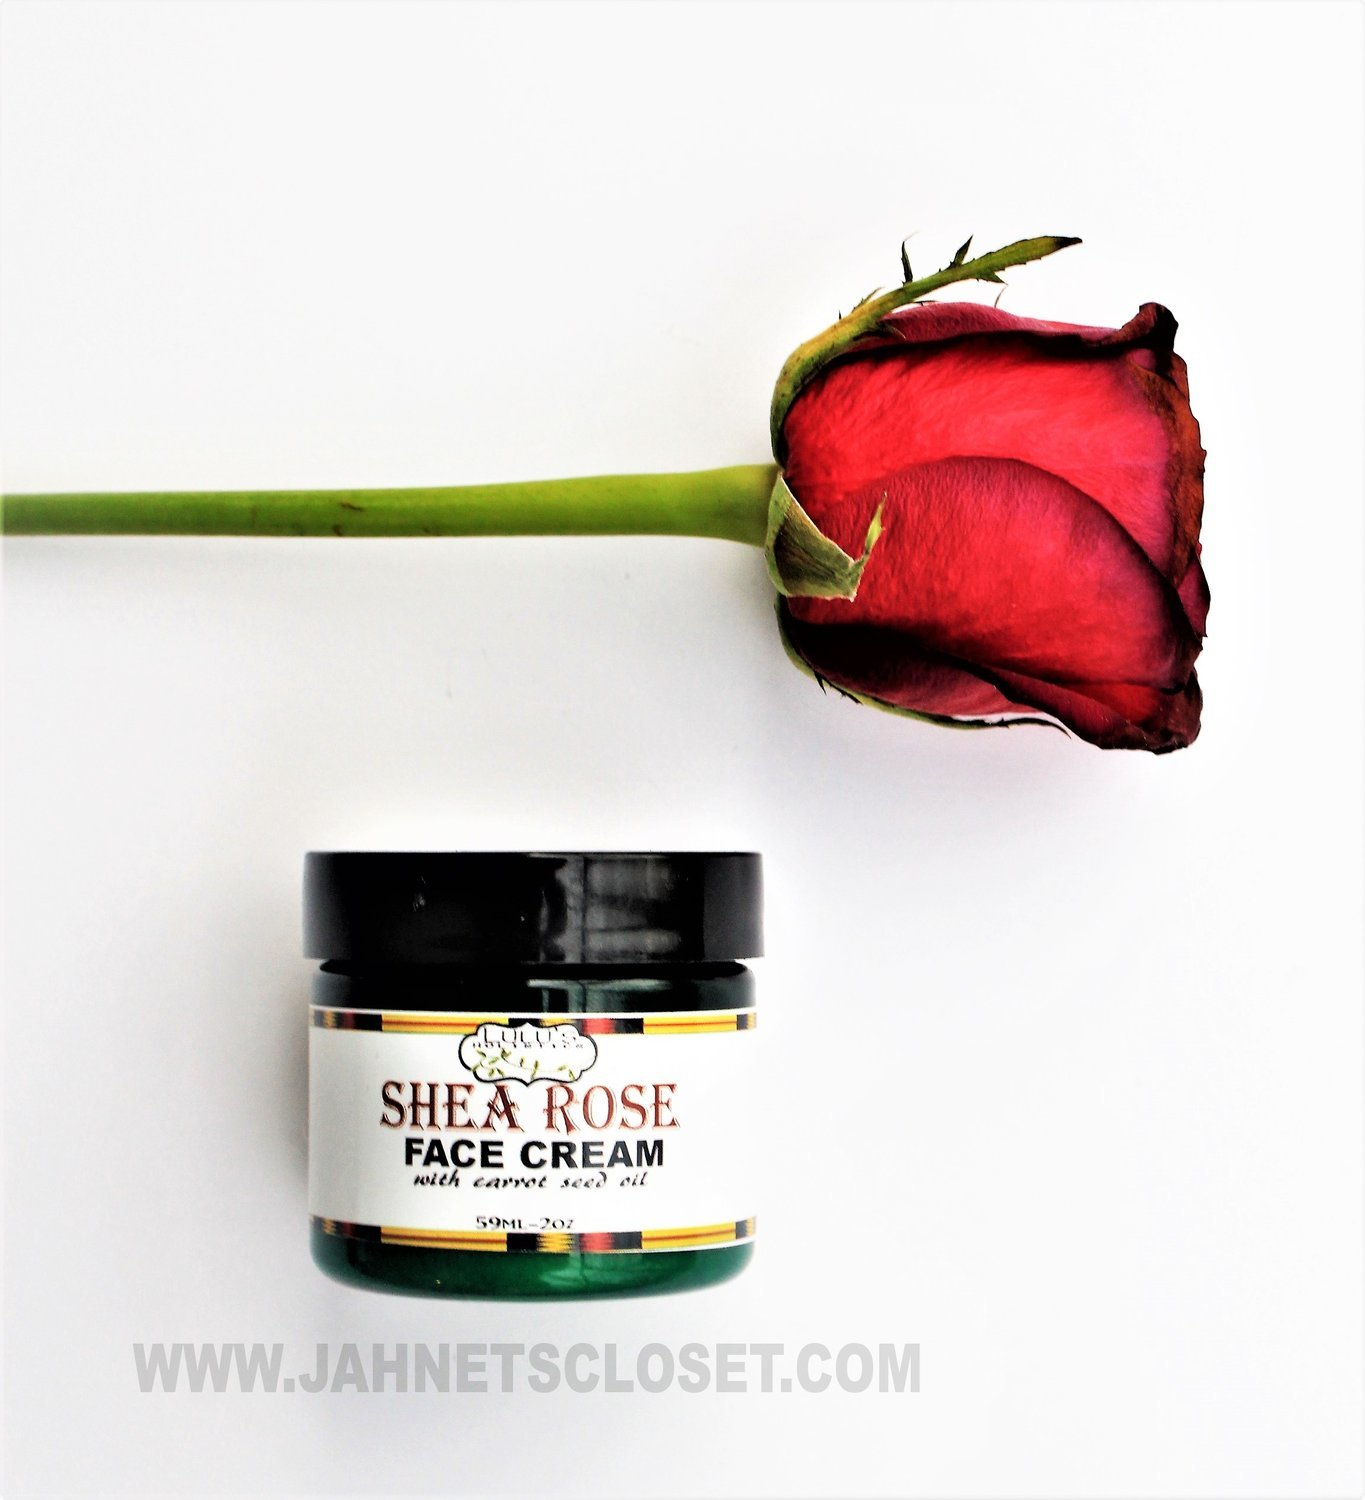 Shea Rose Face cream (with carrot seed oil)